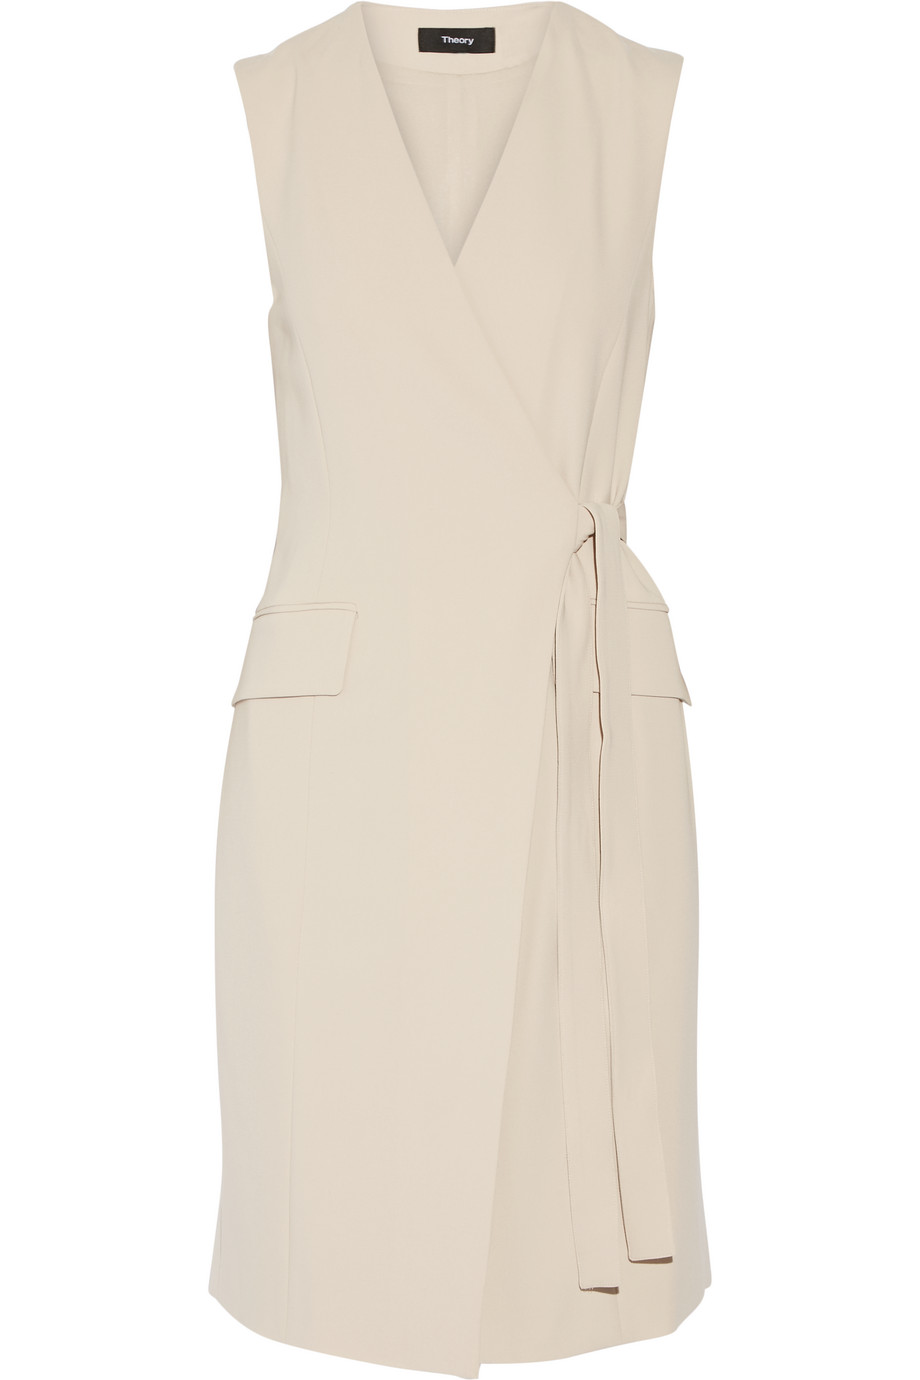 Theory Livwilth Crepe Wrap Dress, Beige, Women's, Size: 0